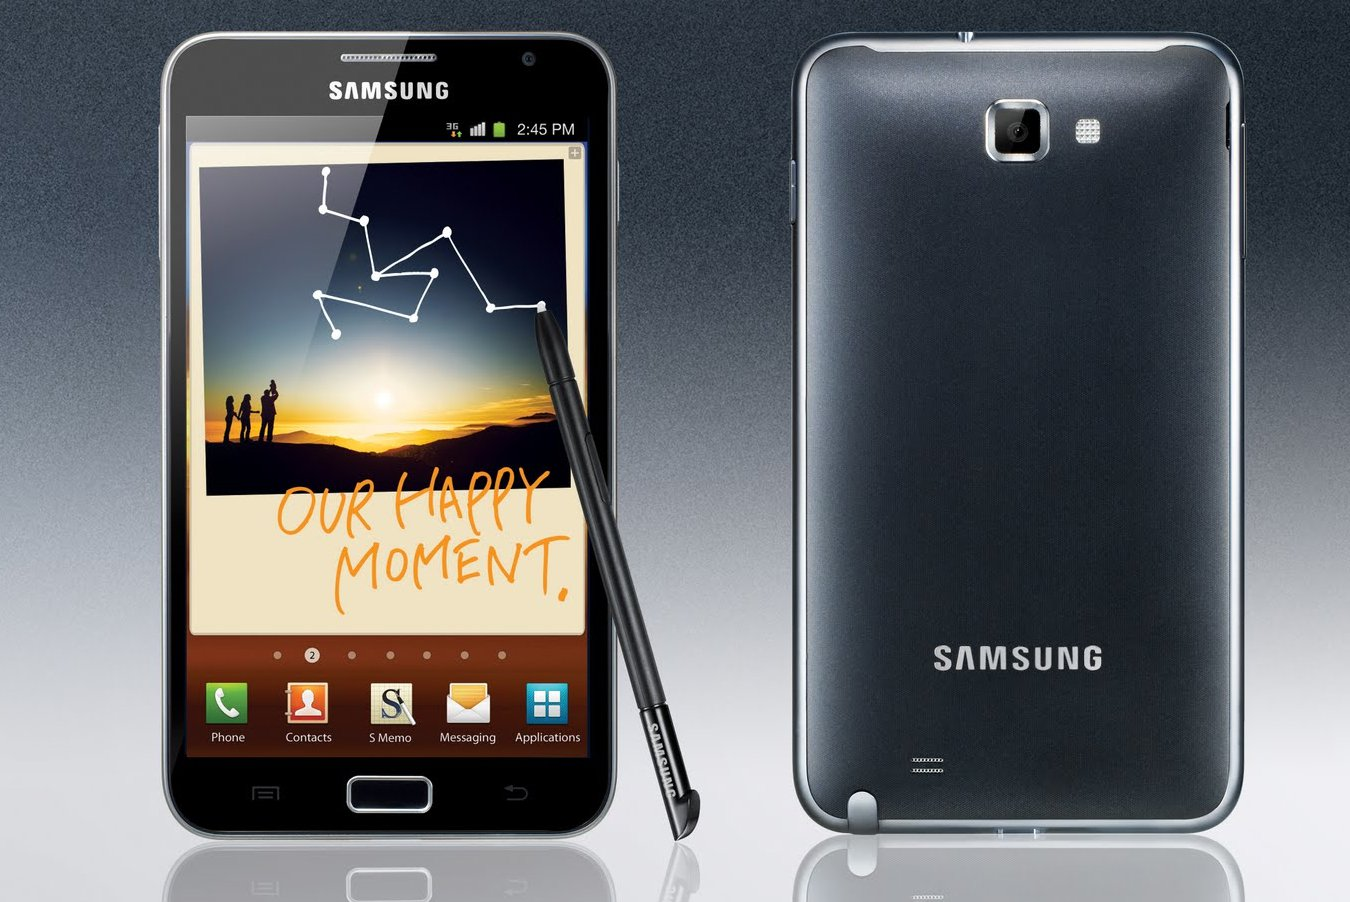 "BRAND NEW Samsung Galaxy NOTE! AMAZING PRICE! EU MODEL! HUGE 5.3"" SUPER AMOLED SCREEN!"